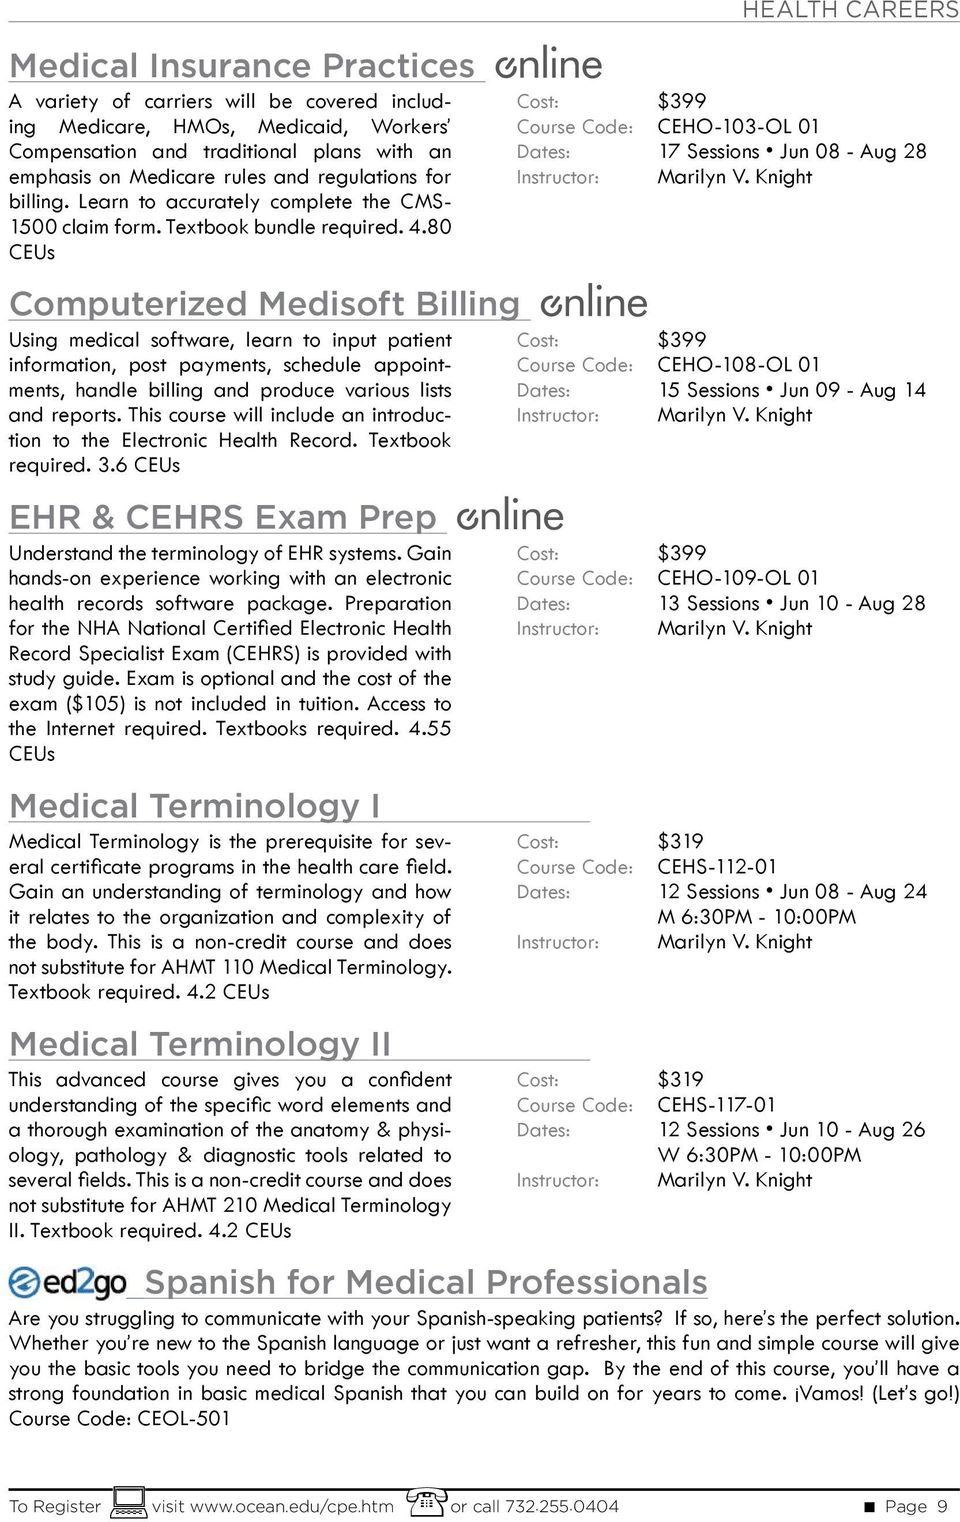 80 CEUs Computerized Medisoft Billing Using medical software, learn to input patient information, post payments, schedule appointments, handle billing and produce various lists and reports.